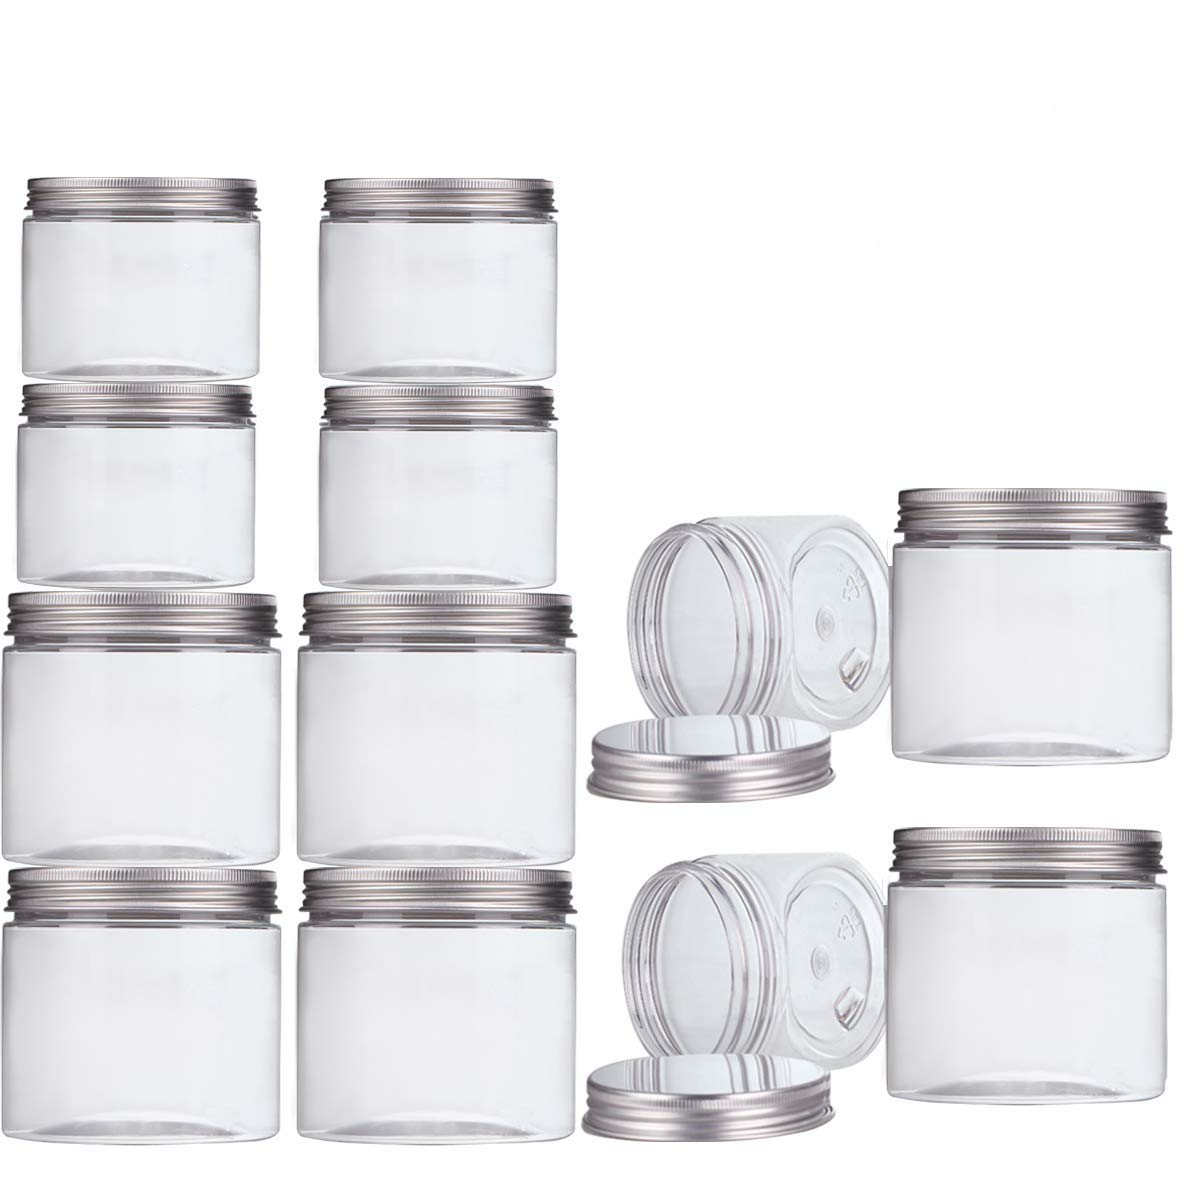 89ec401fd65c Cheap 1 Oz Plastic Spice Jars, find 1 Oz Plastic Spice Jars deals on ...